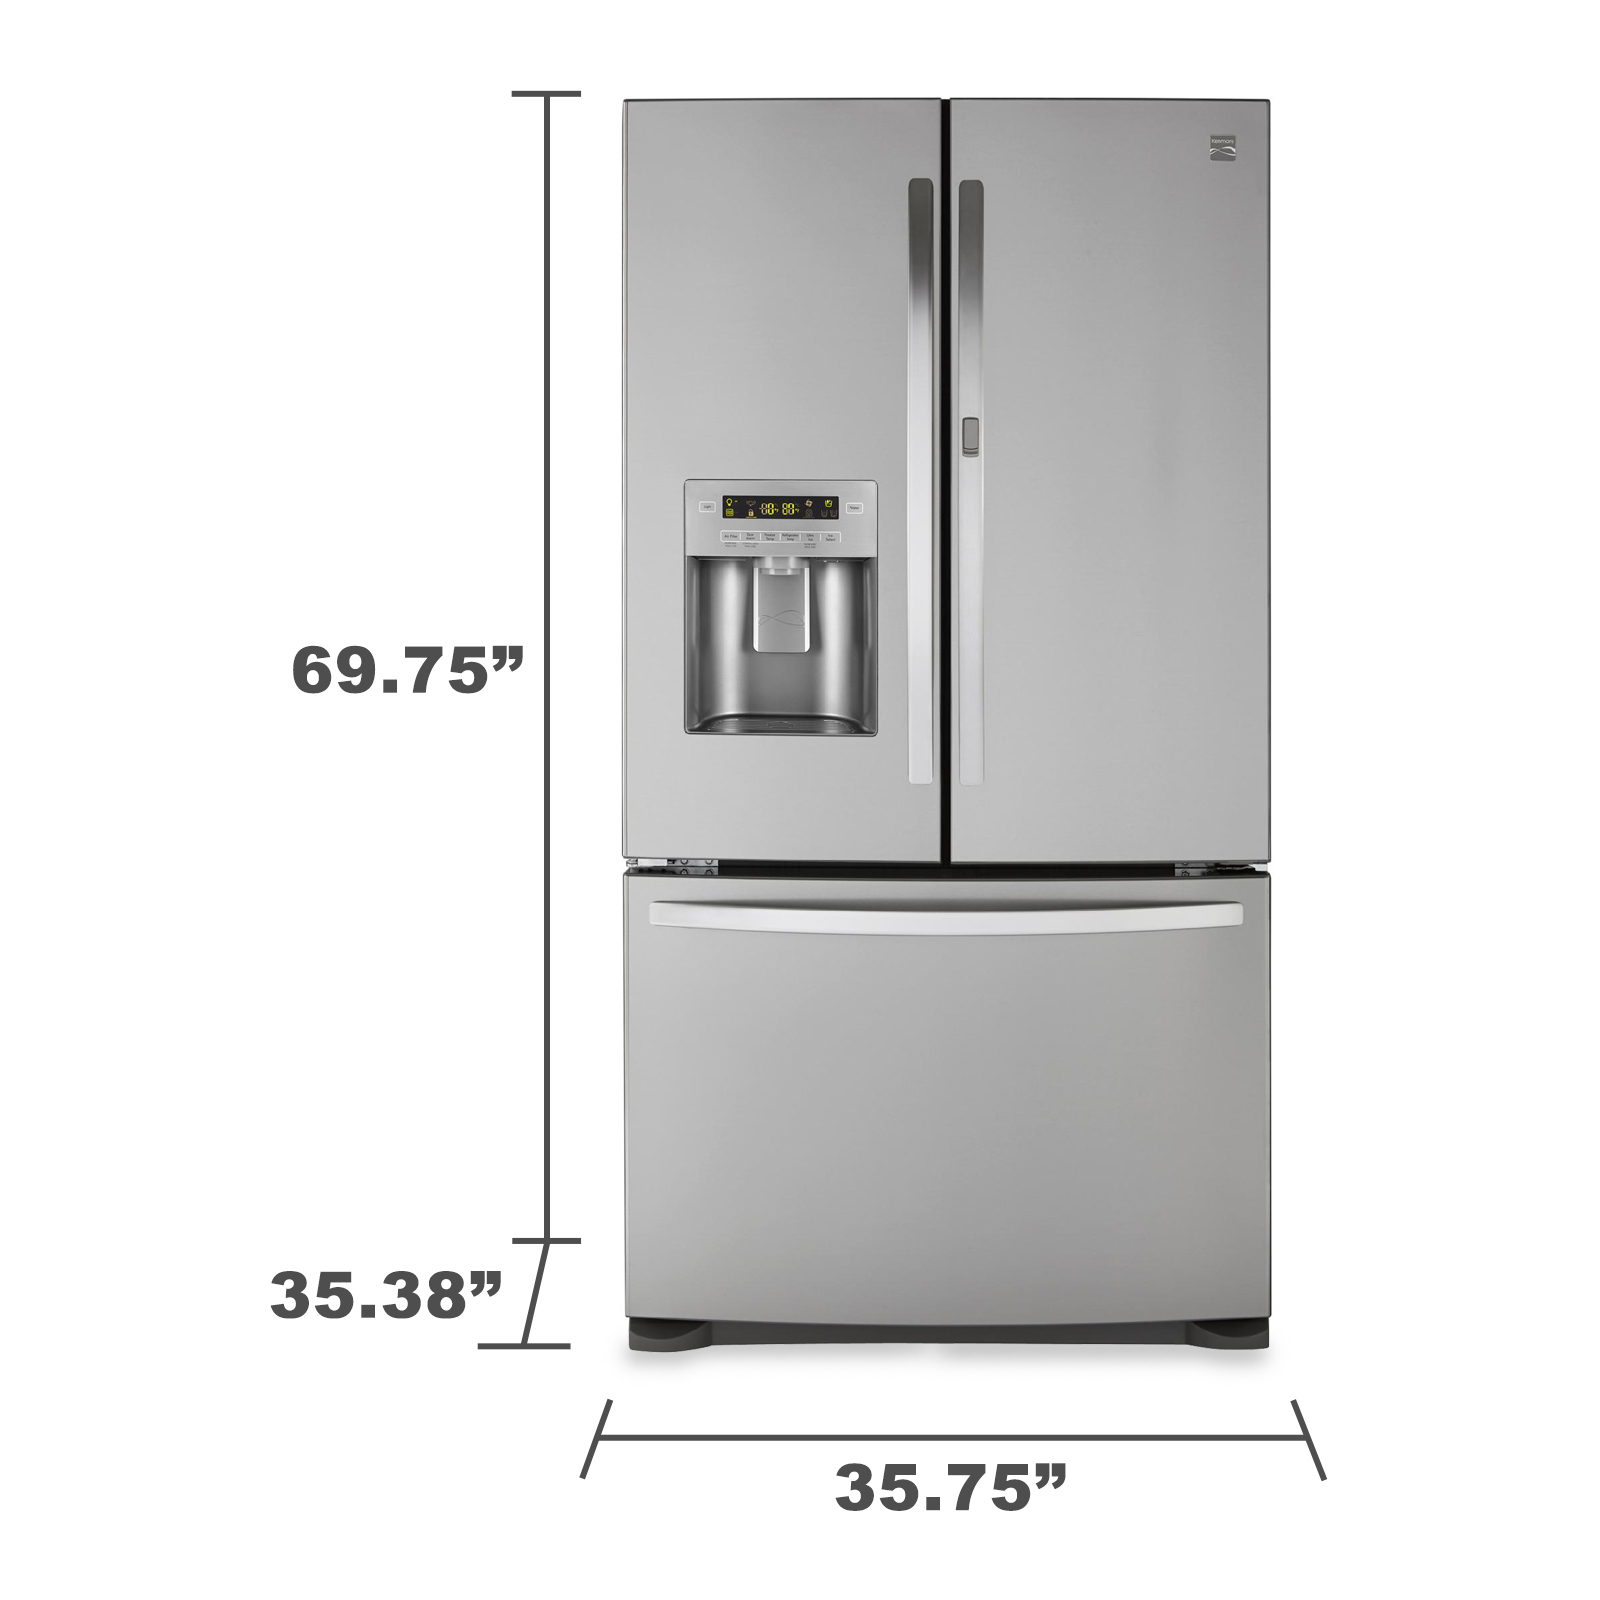 Kenmore 73065 26.6 cu. ft. Silver French Door Refrigerator with Bottom Freezer